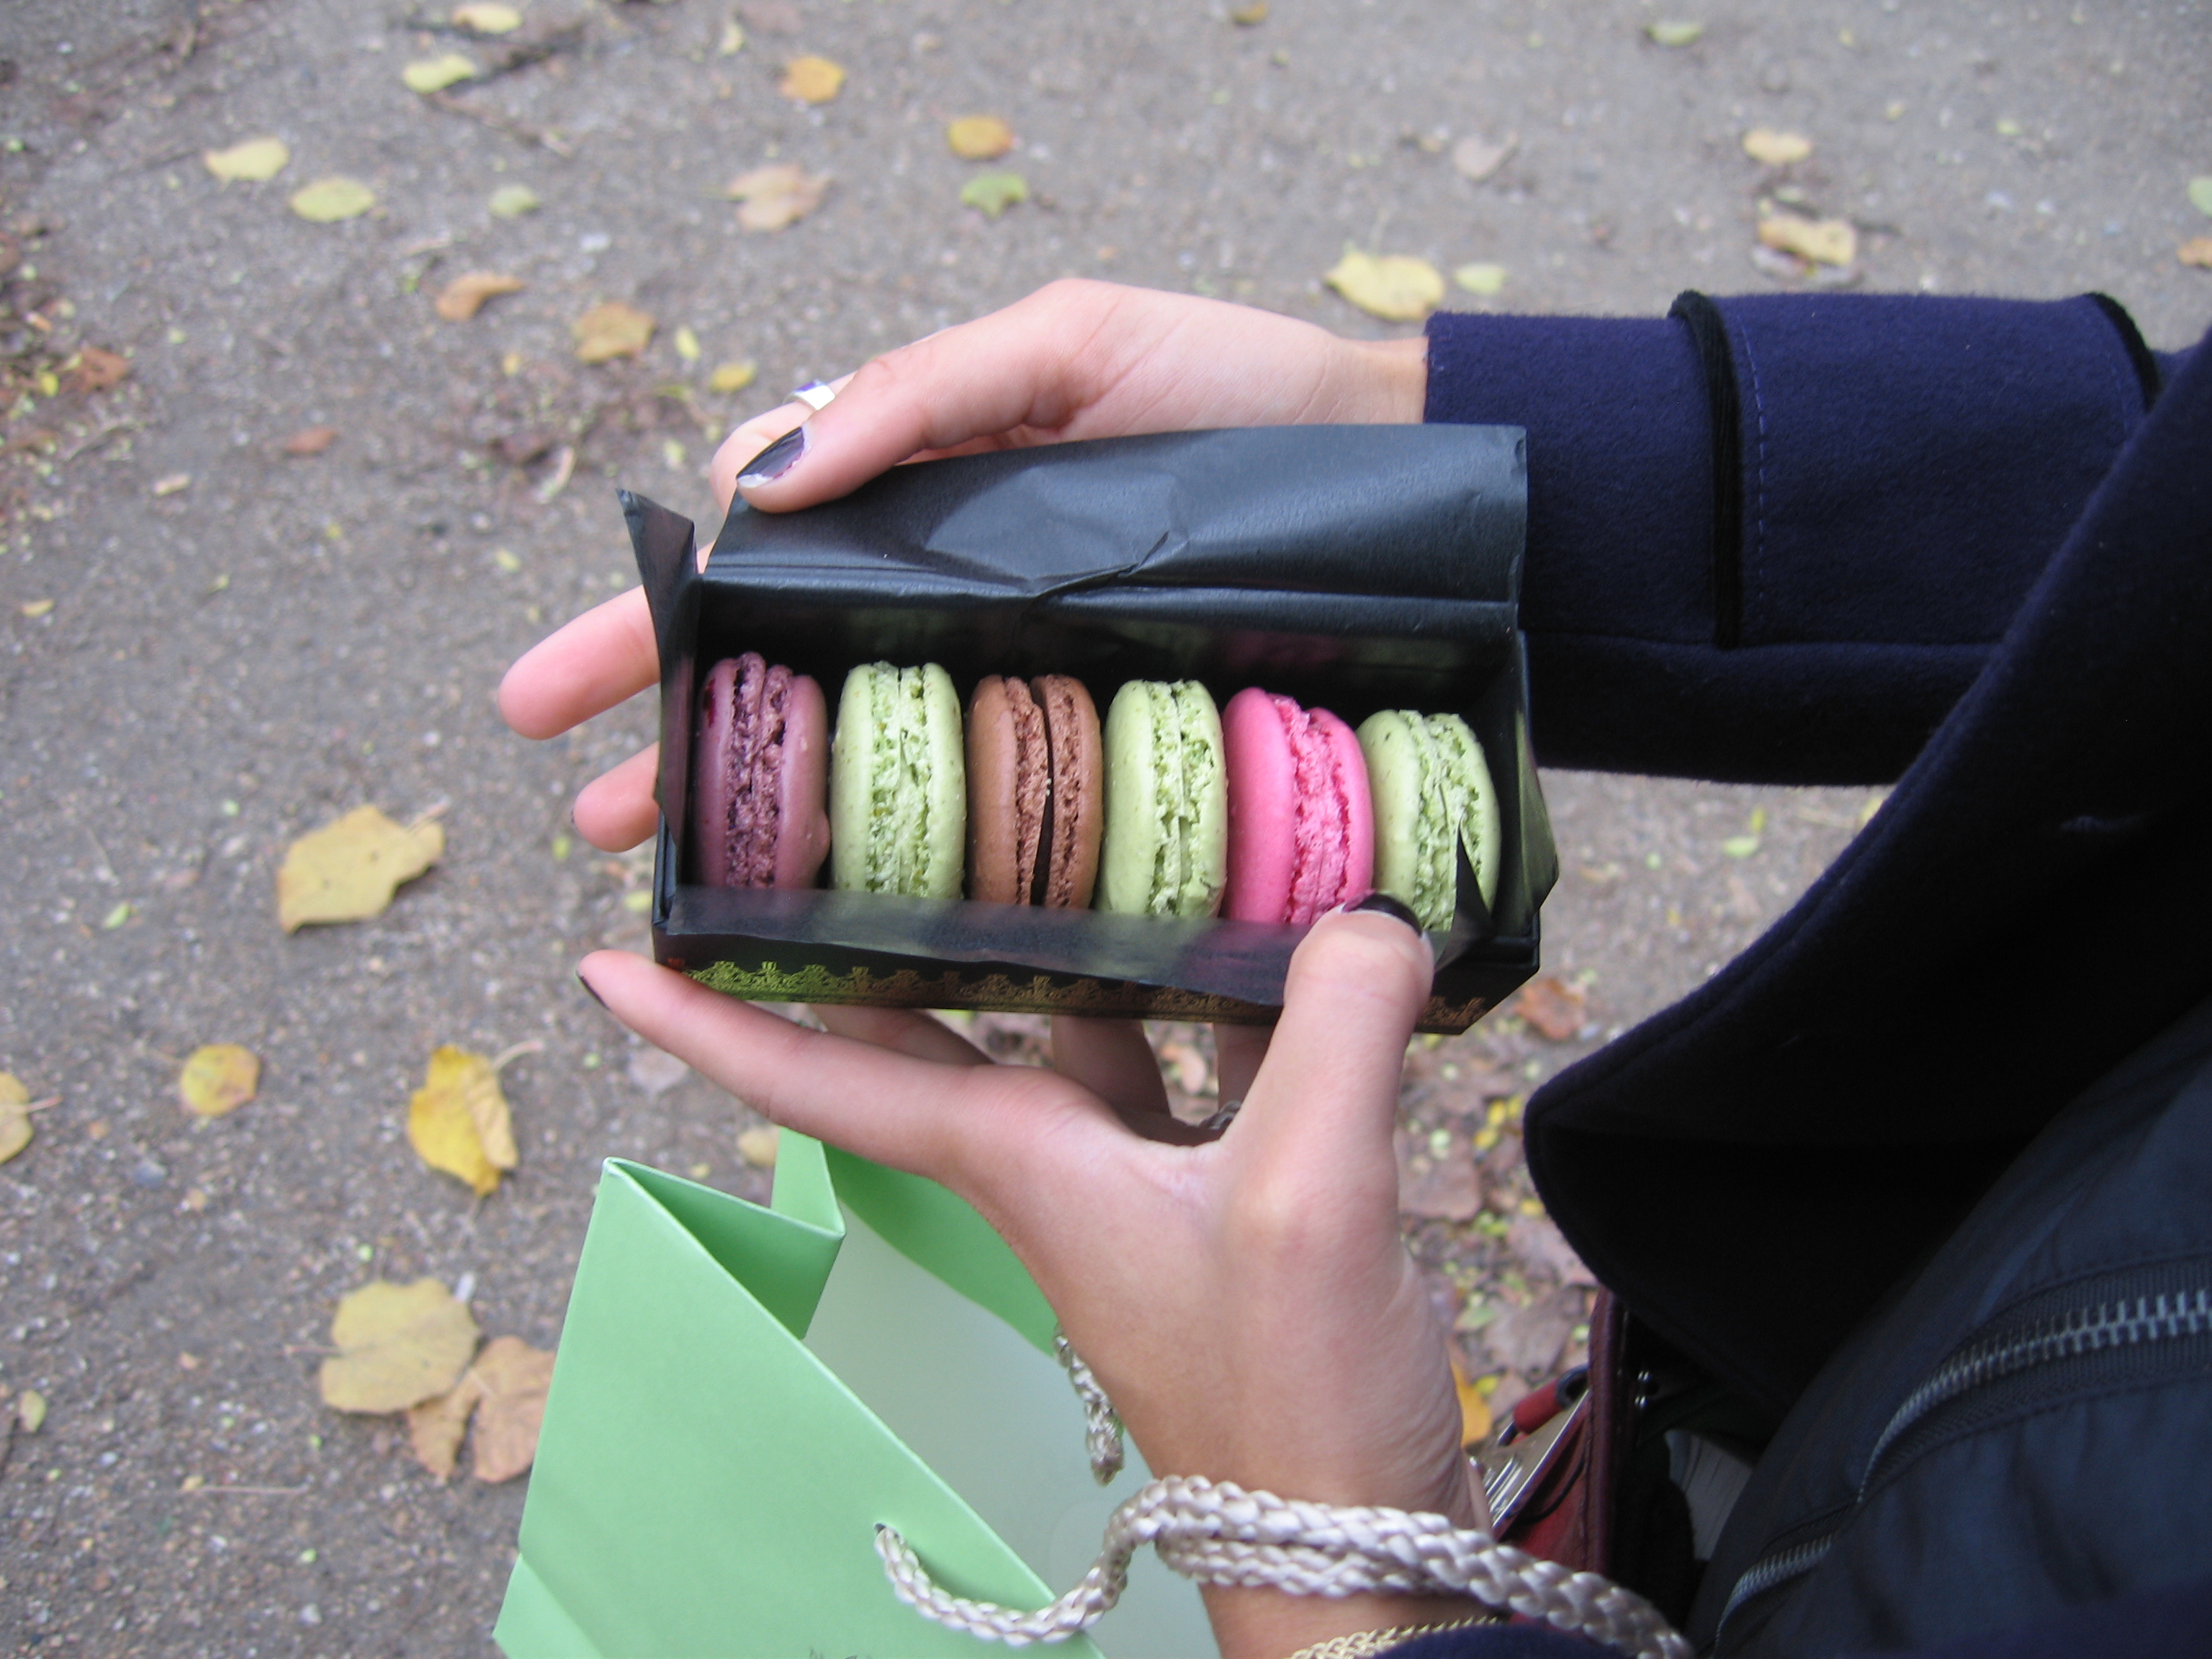 Laduree for macaroons